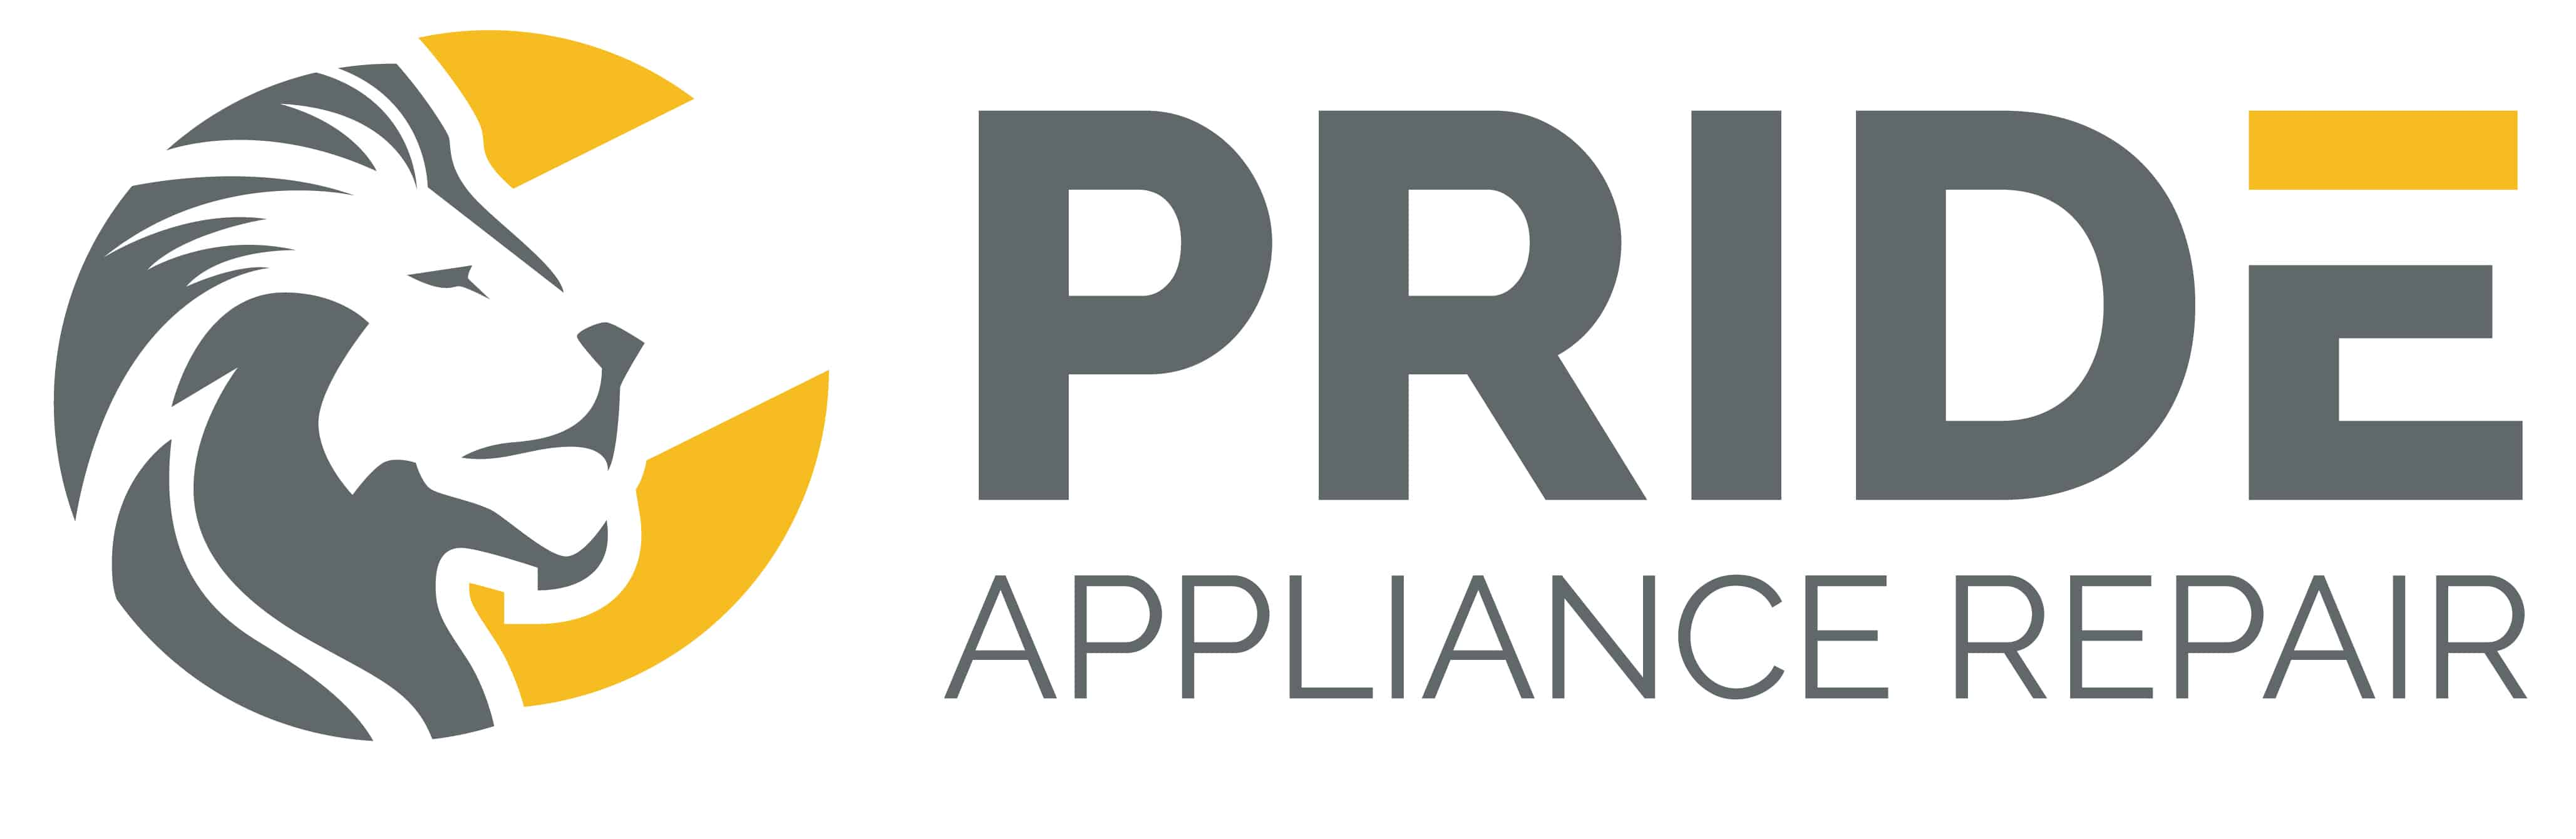 pride appliance repair logo